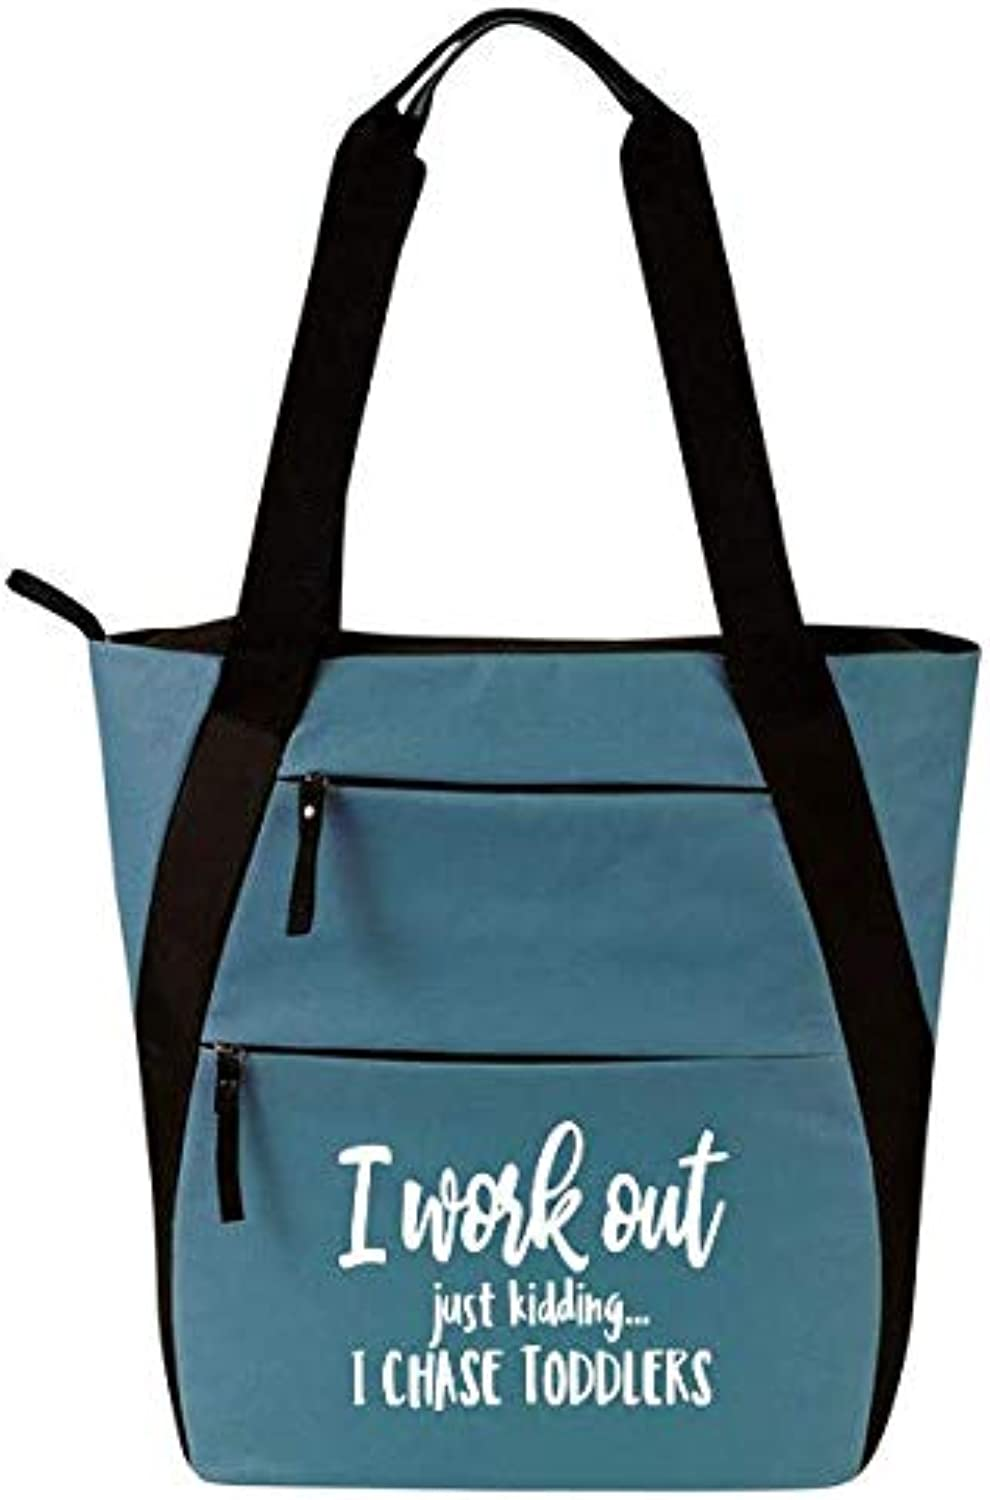 Gym Tote Bag for Women  Workout Tote  Funny Gym Fitness Sayings  Fitness Tote Bag for Women (Gym Tote Bag, I Work Out J K I Chase Toddlers blueee)